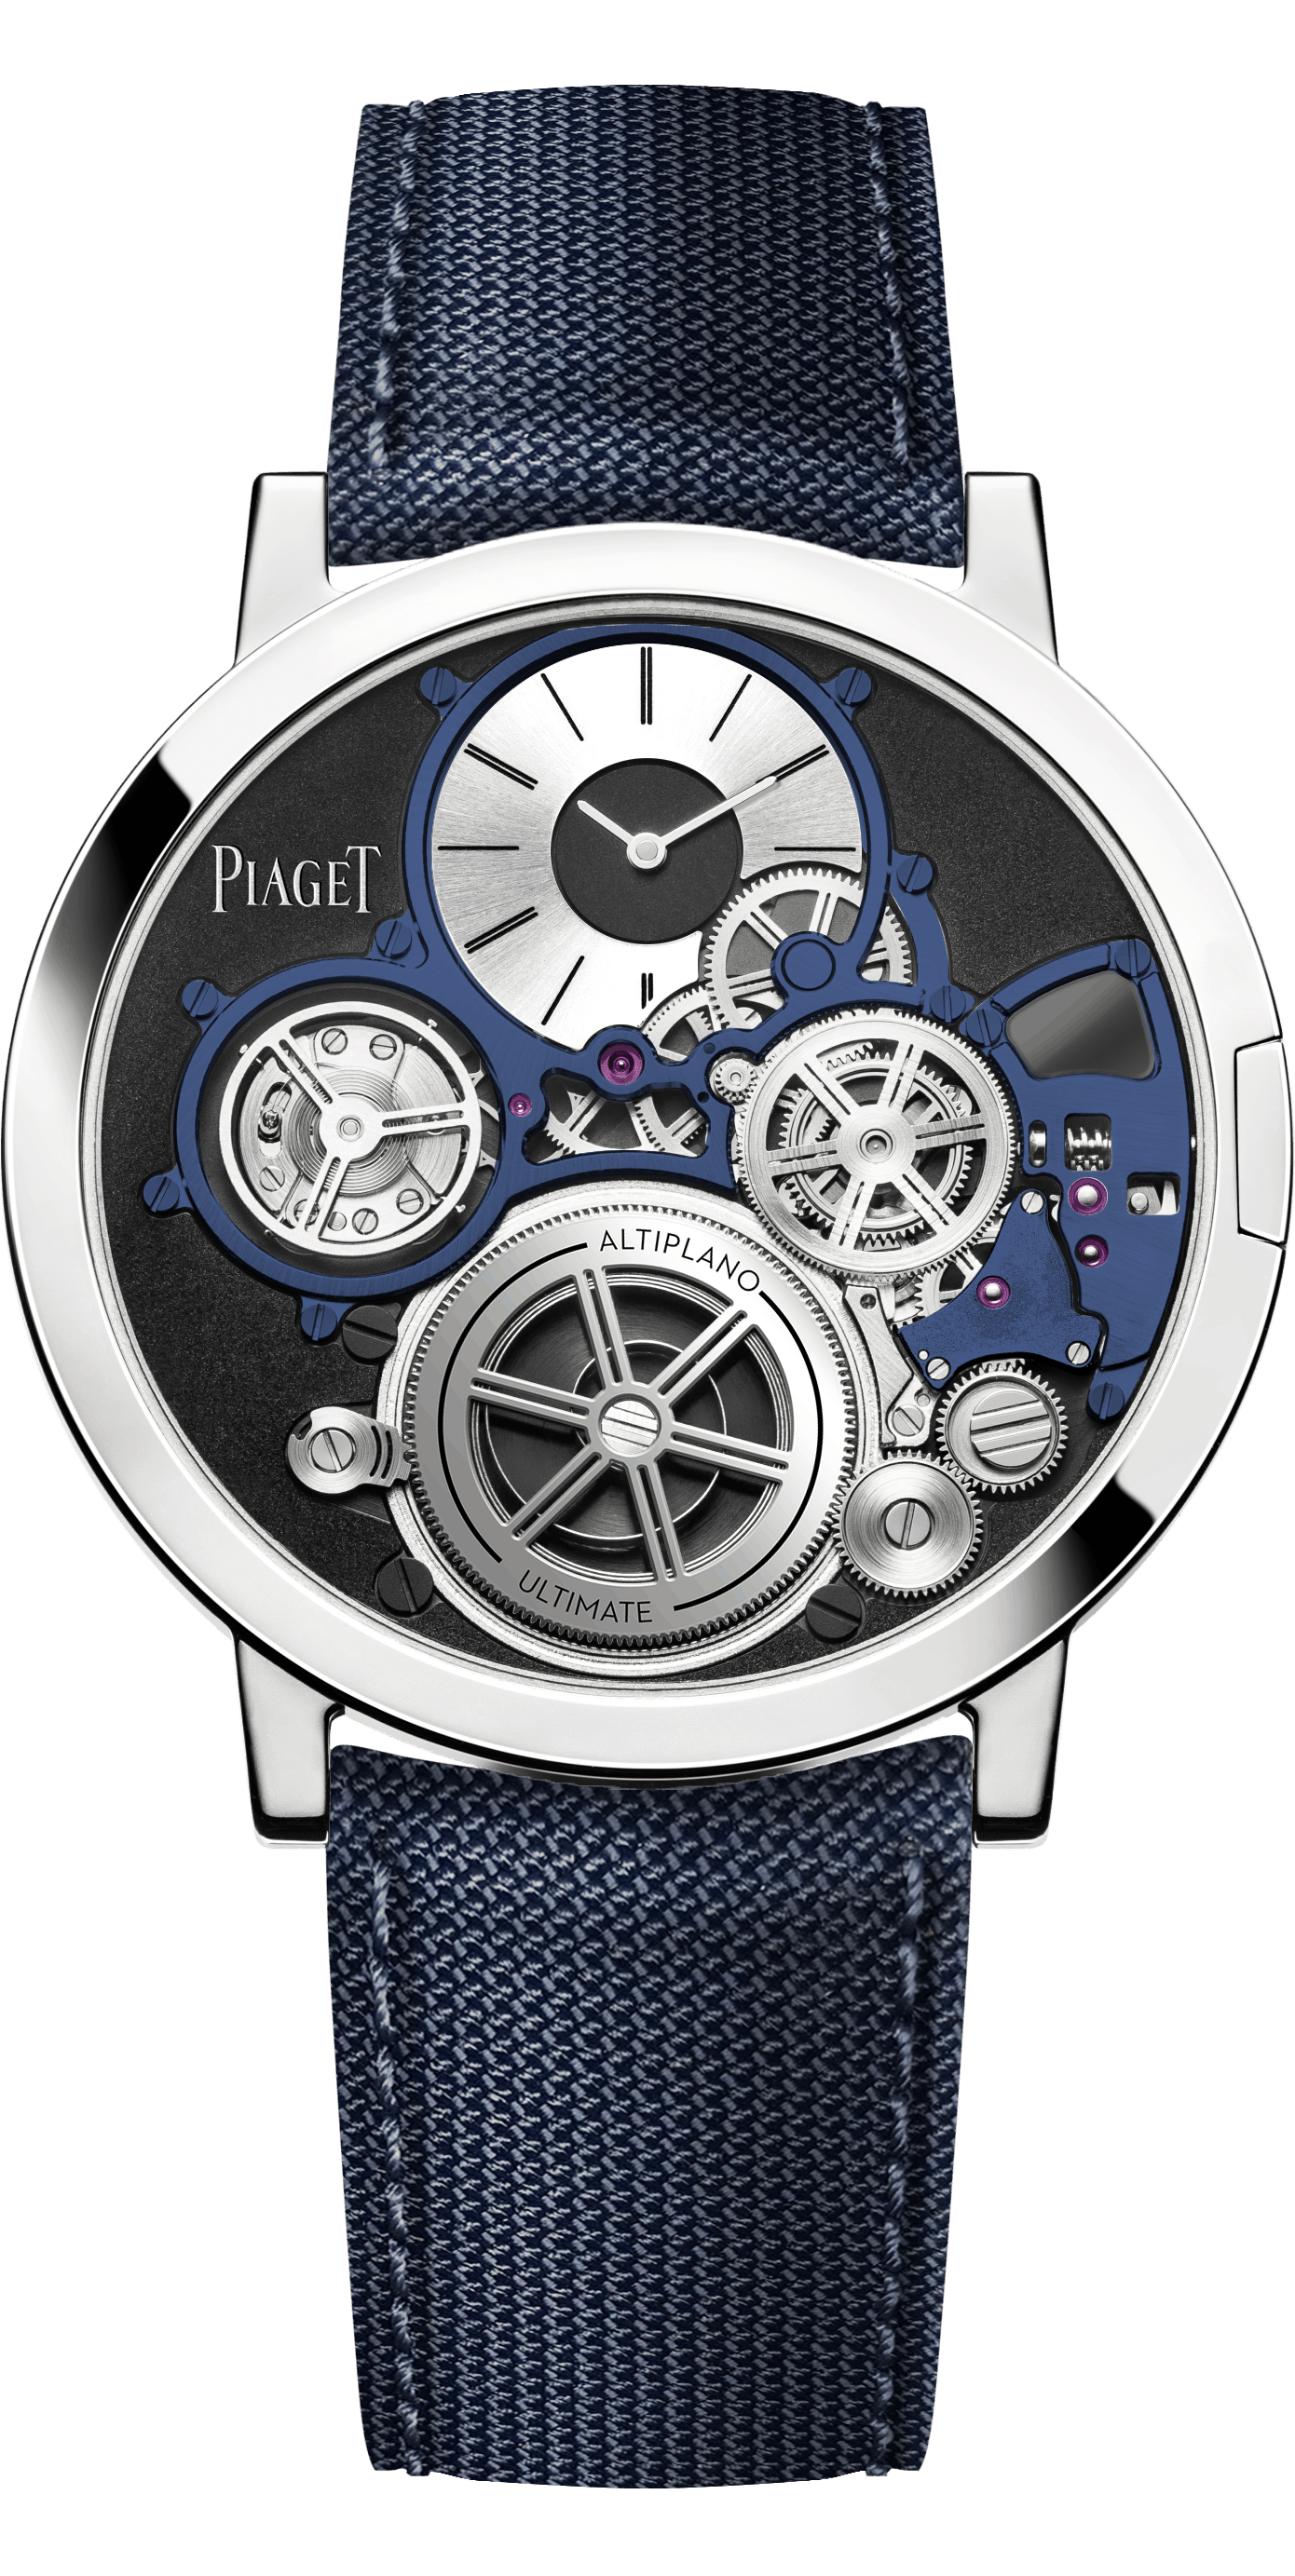 "In blau - Piaget ""Altiplano Ultimate Concept"", Referenz G0A45502"